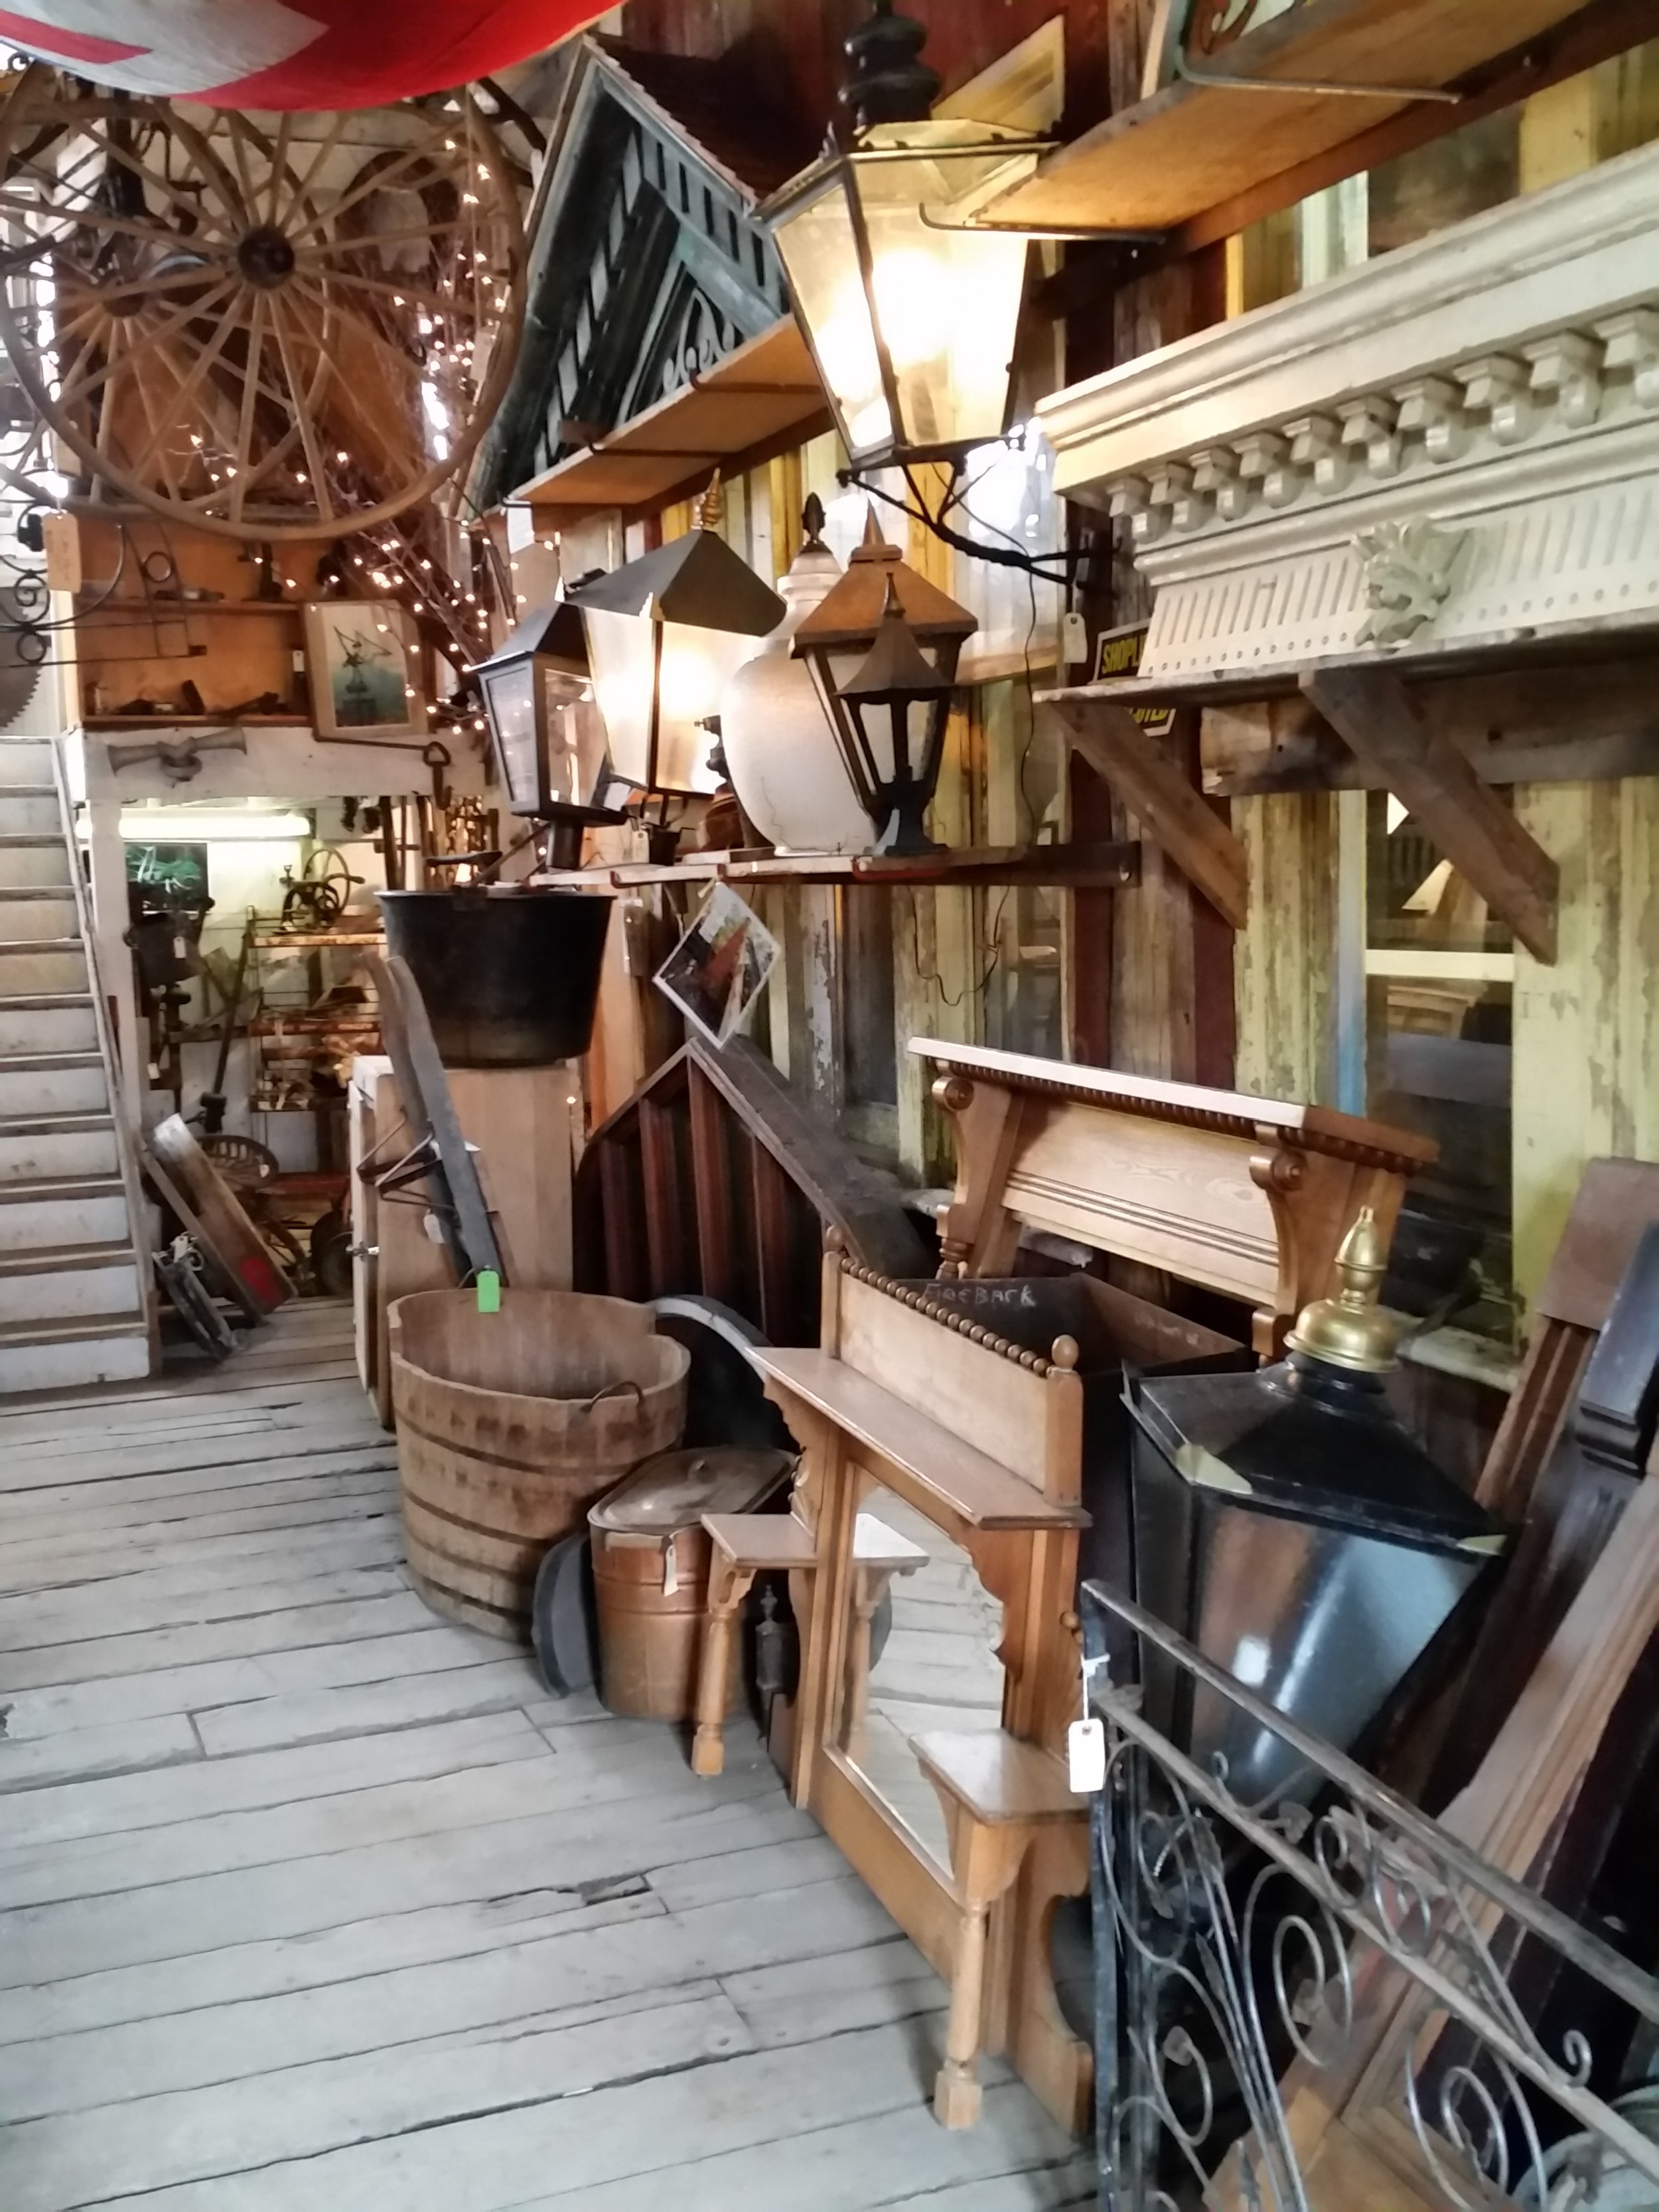 Wagon wheels, a wooden bathtub and other glorious finds.